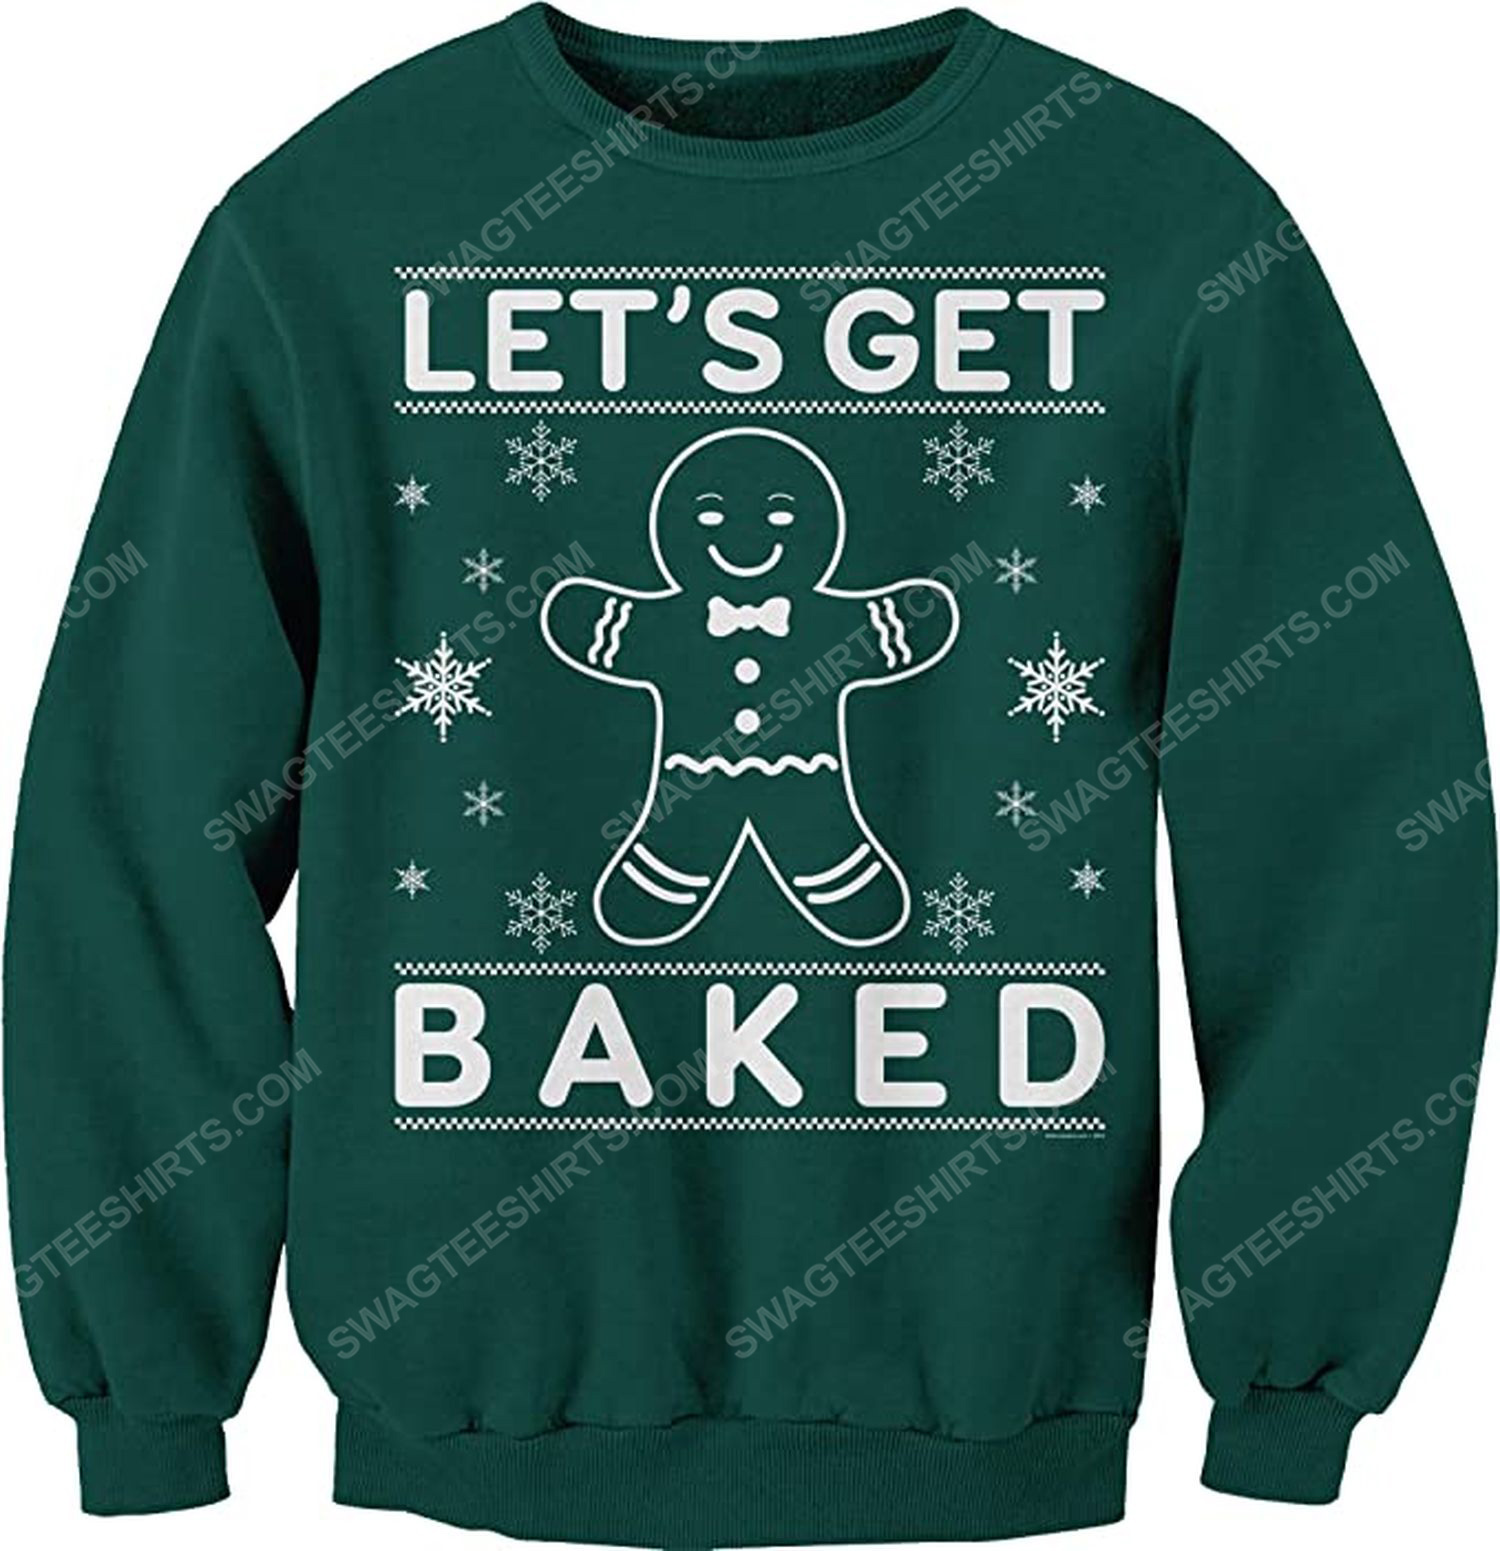 Let's get baked happy gingerbread full print ugly christmas sweater 2 - Copy